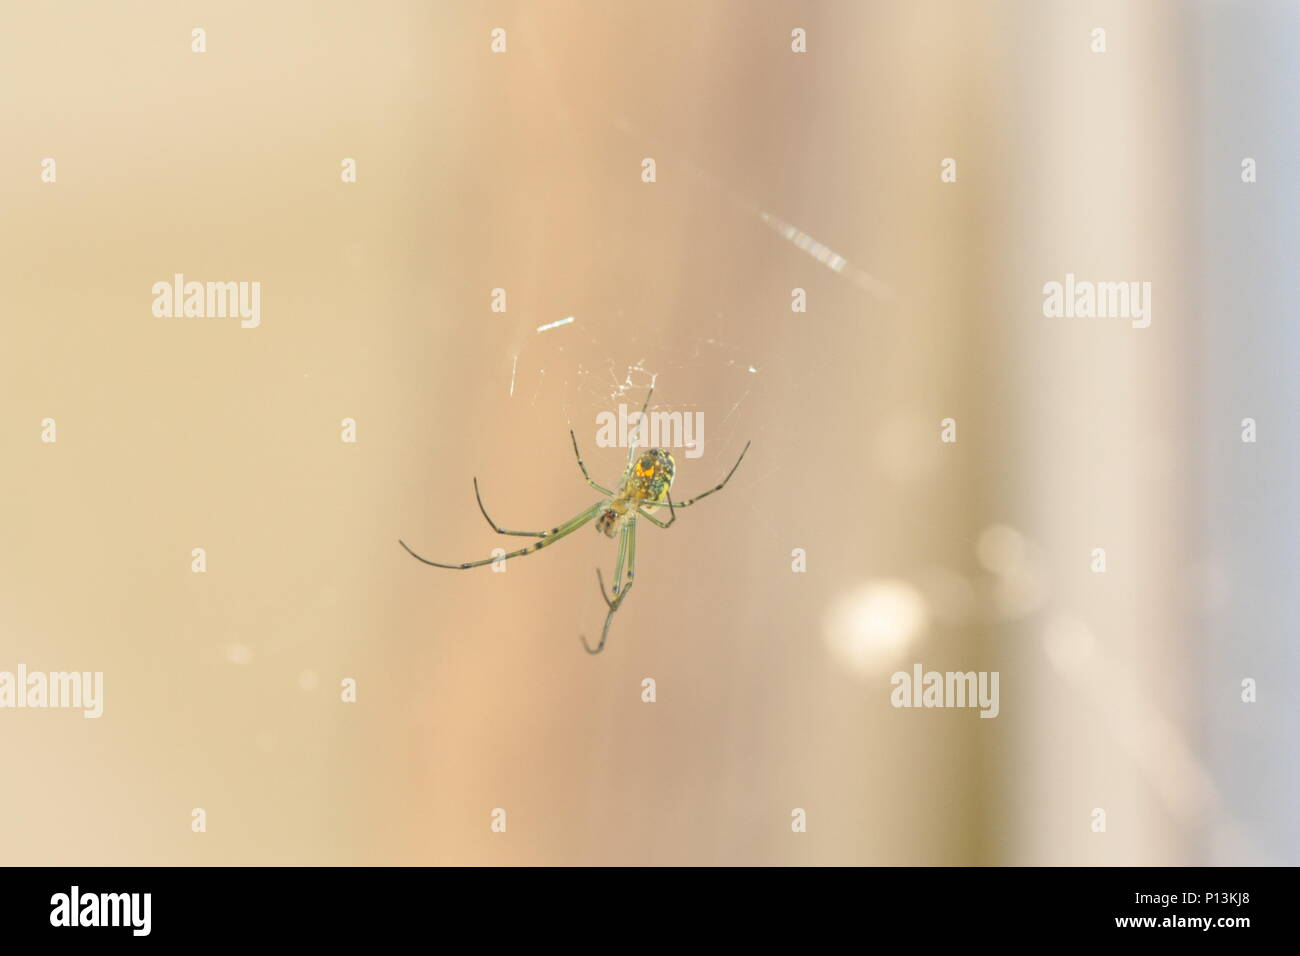 A Spider Hanging Around Waiting for some action - Stock Image